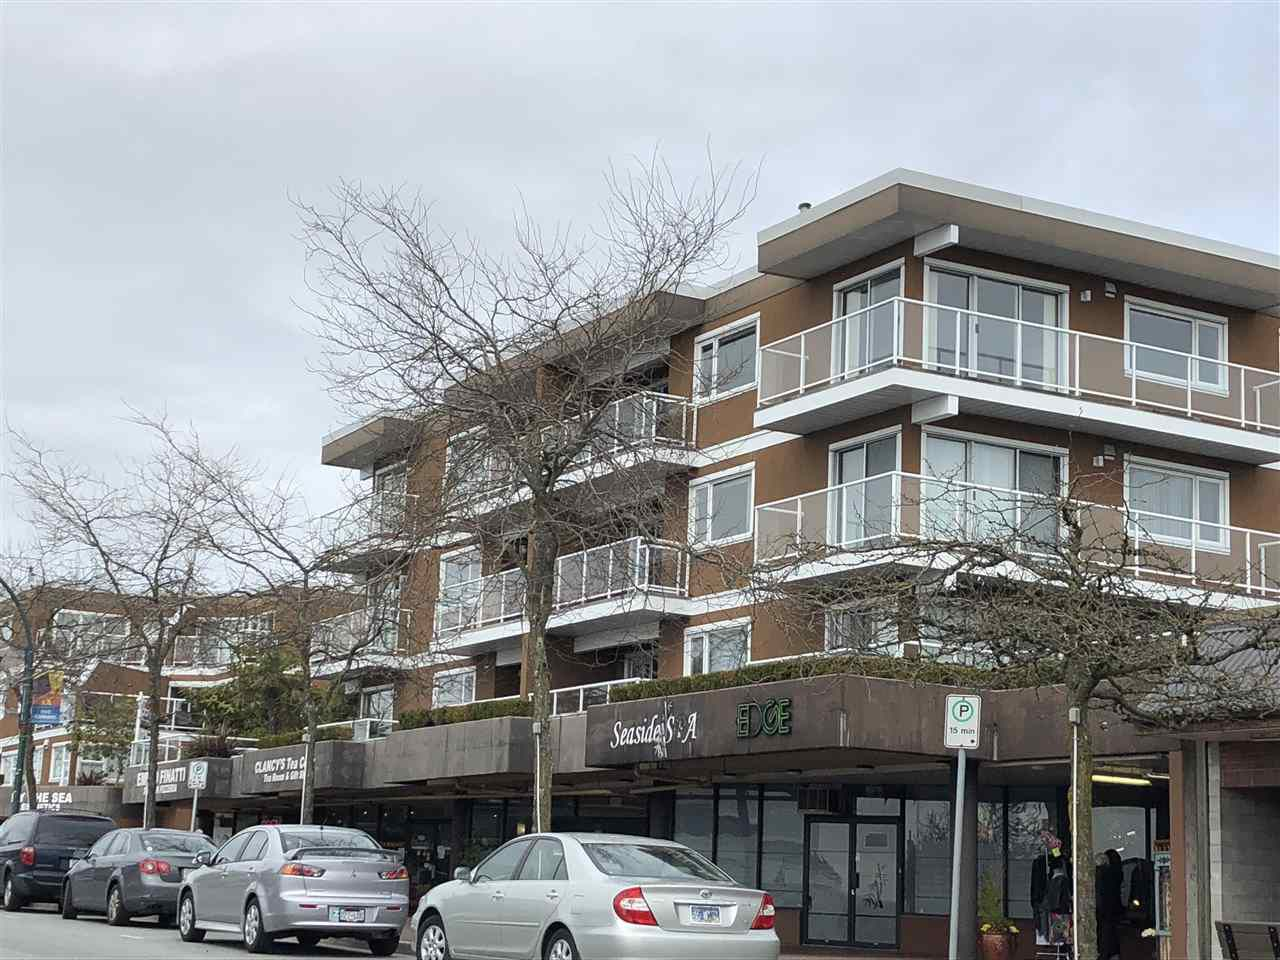 Main Photo: 206 15233 PACIFIC Avenue: White Rock Condo for sale (South Surrey White Rock)  : MLS®# R2251989